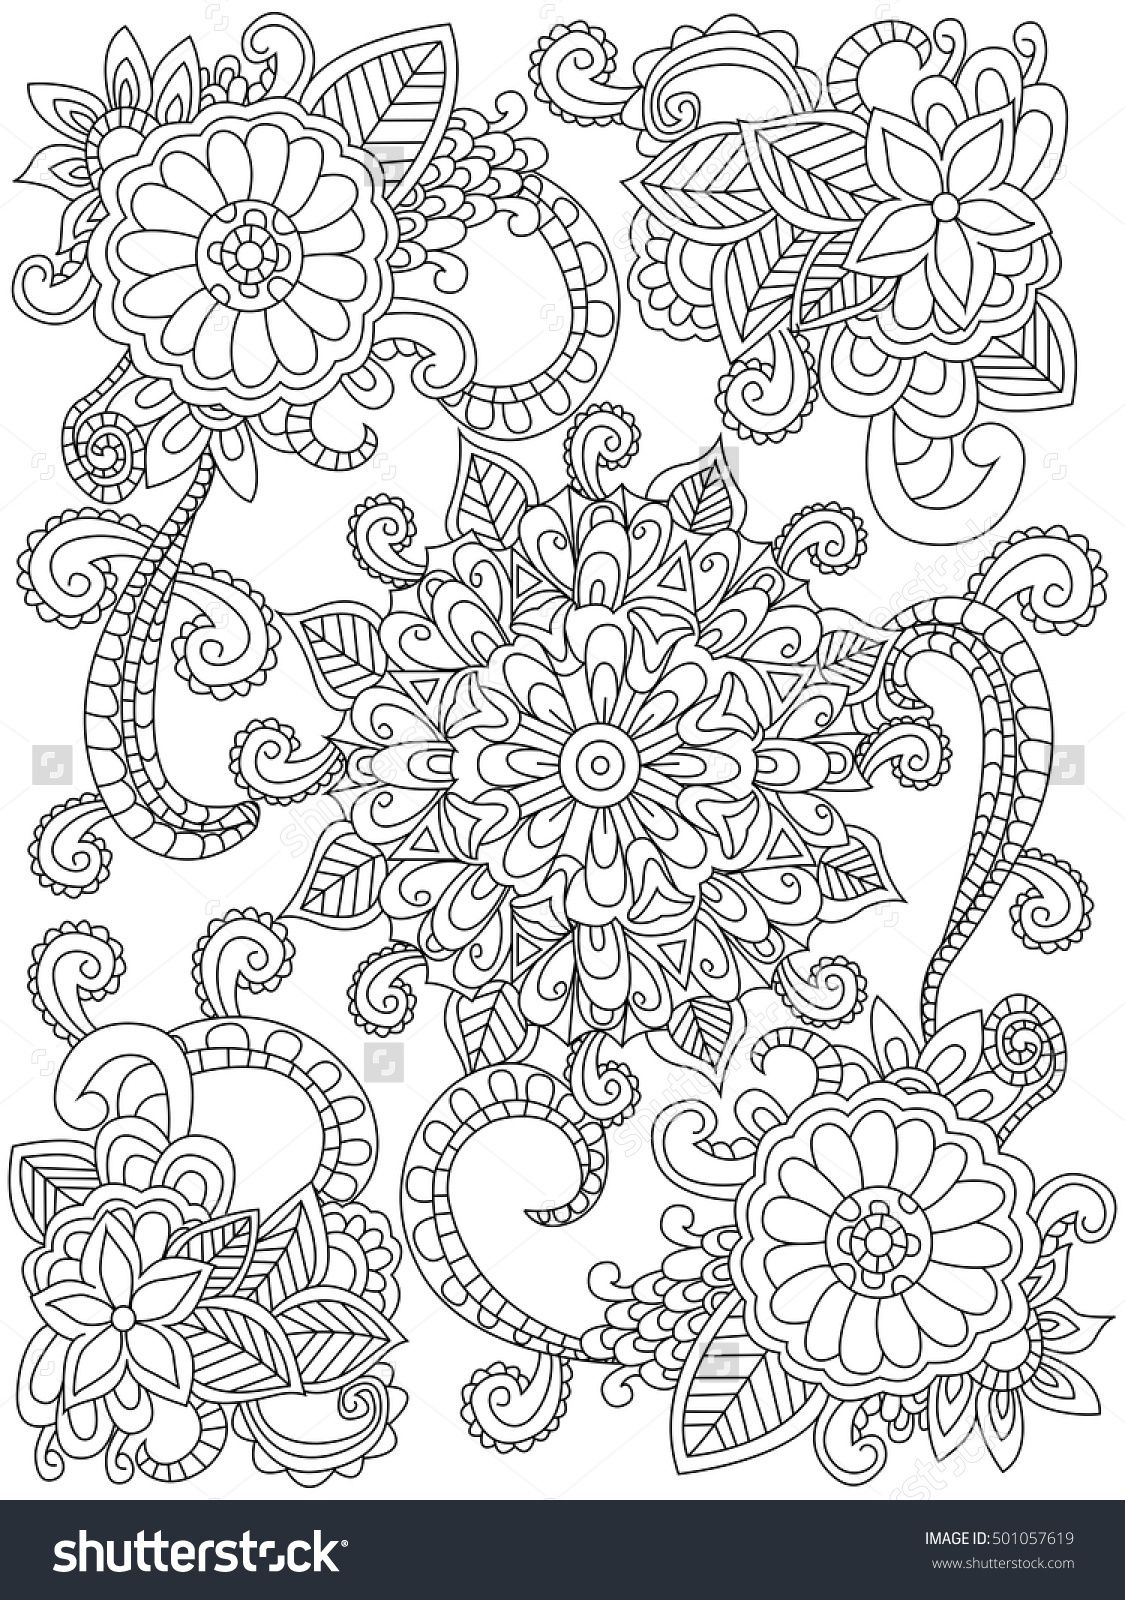 Mandala Flower Coloring Book For Adults Vector